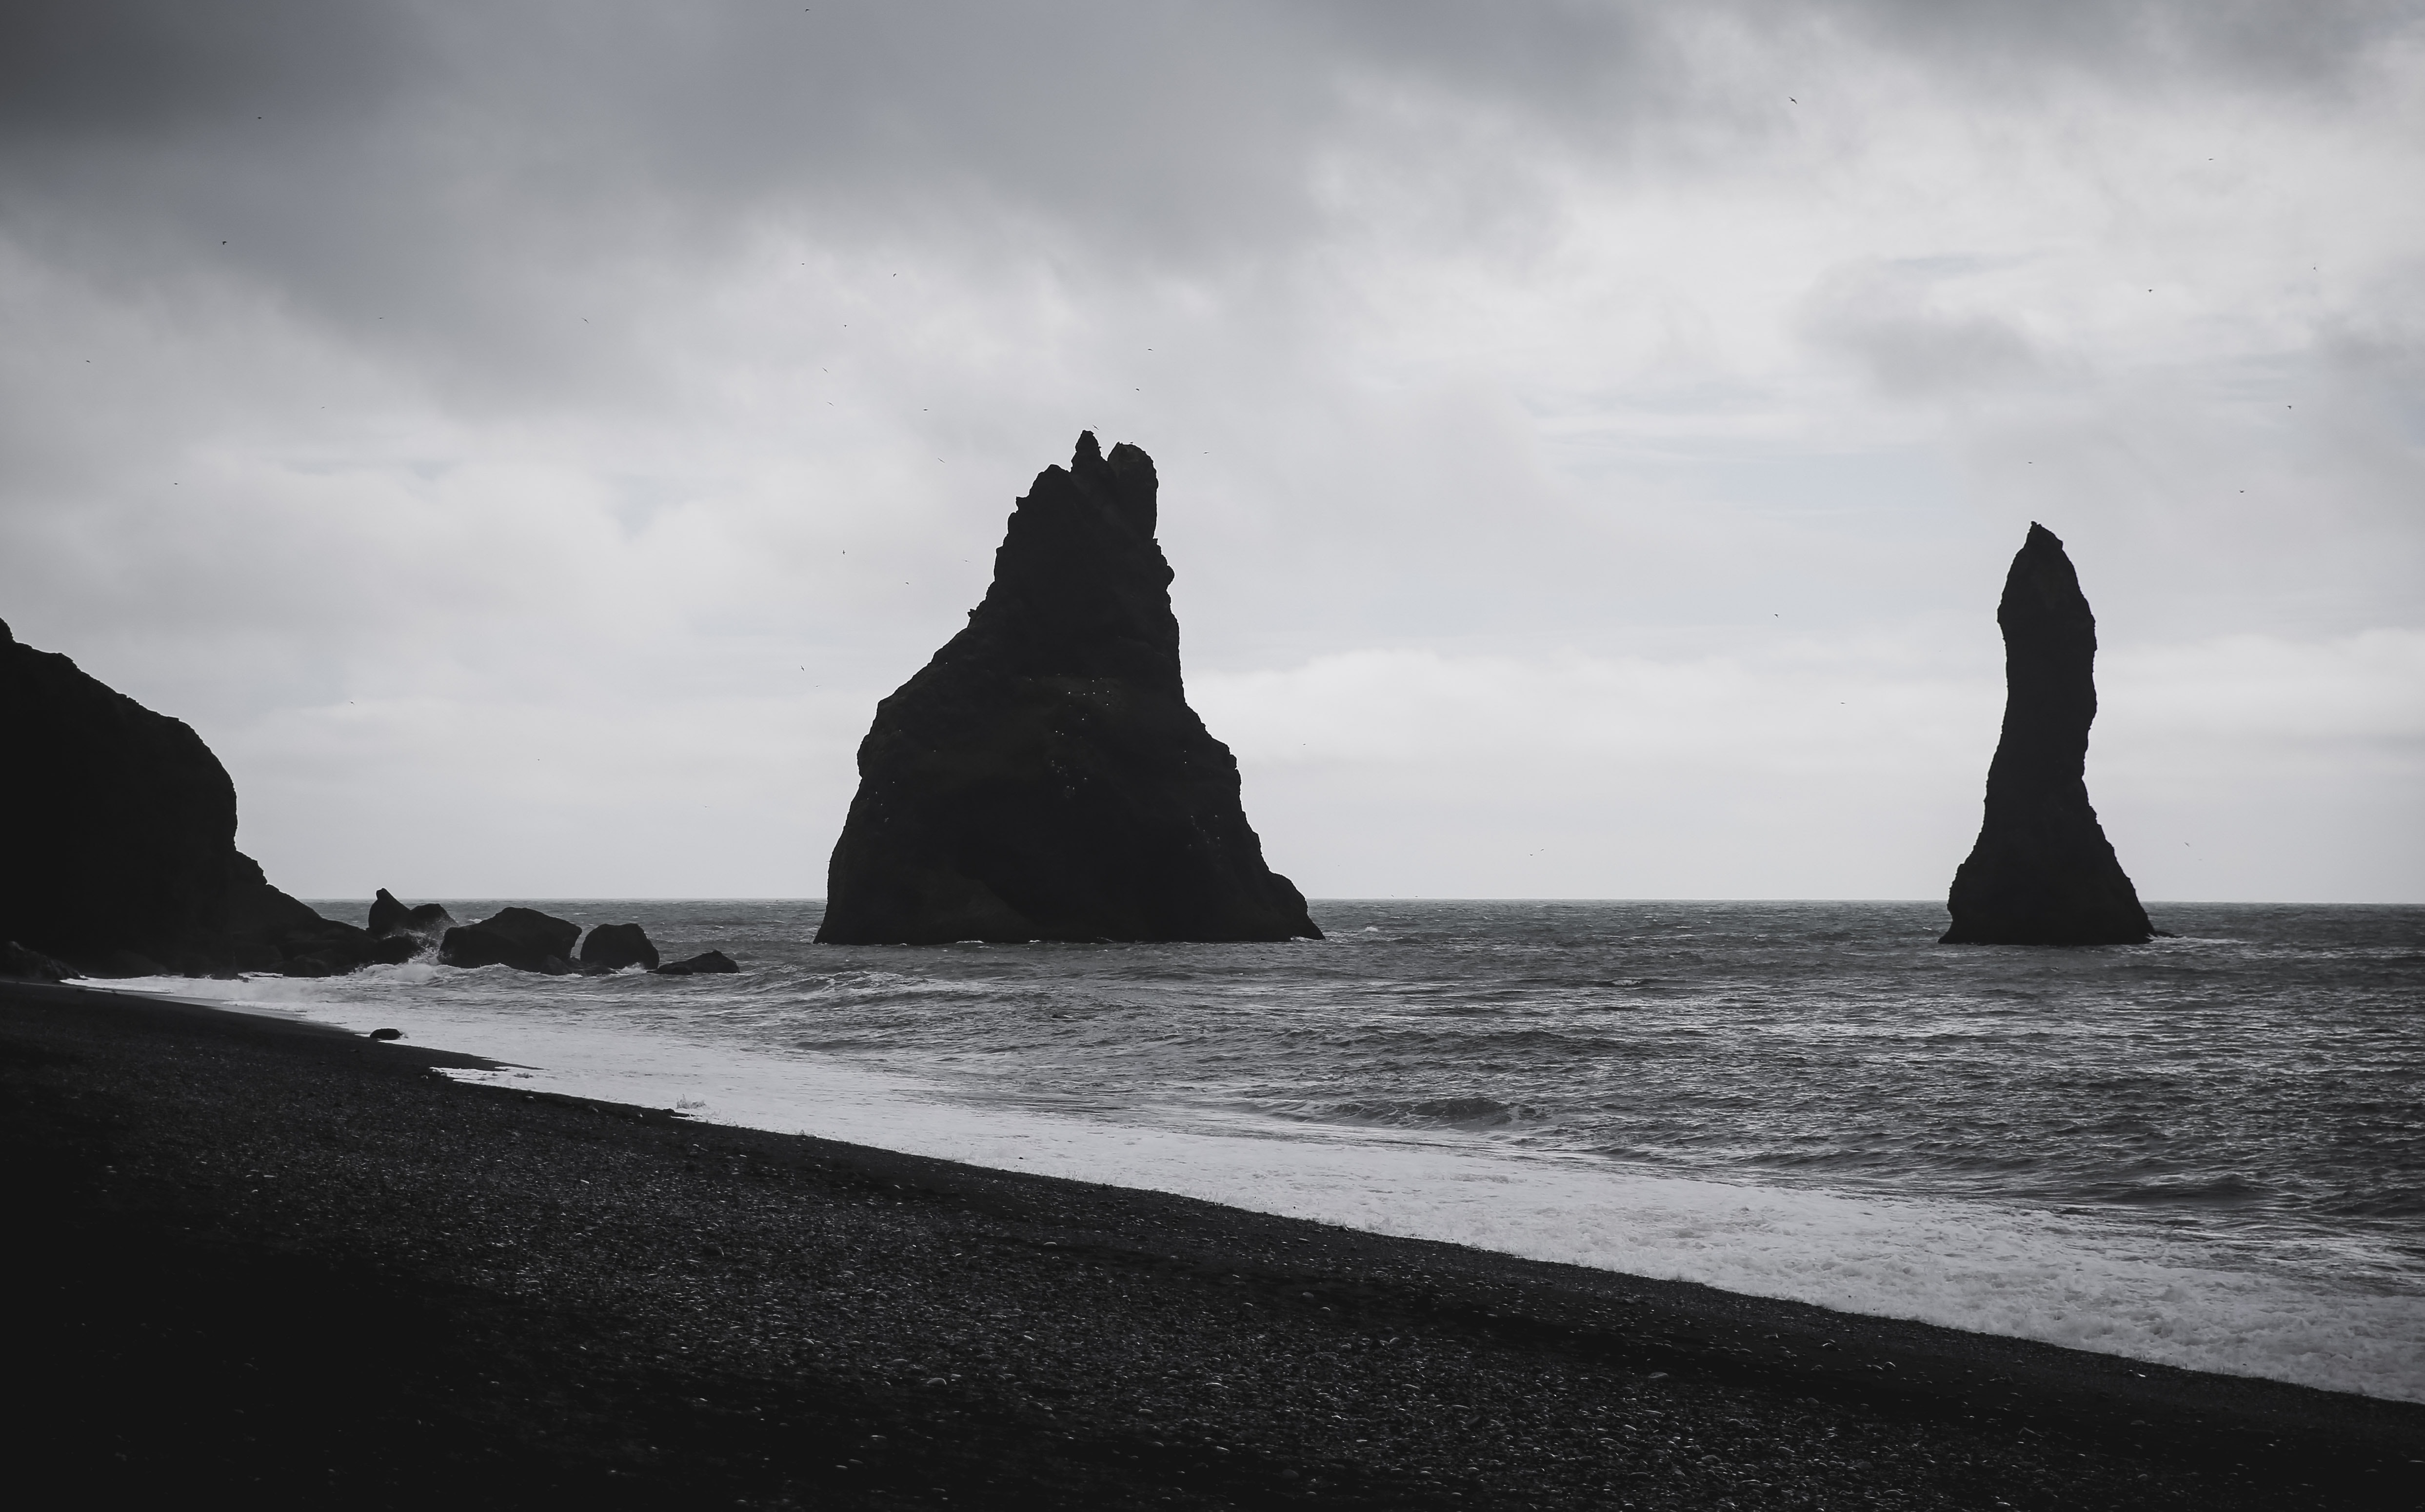 grayscale photography of rock formations on shore during daytime